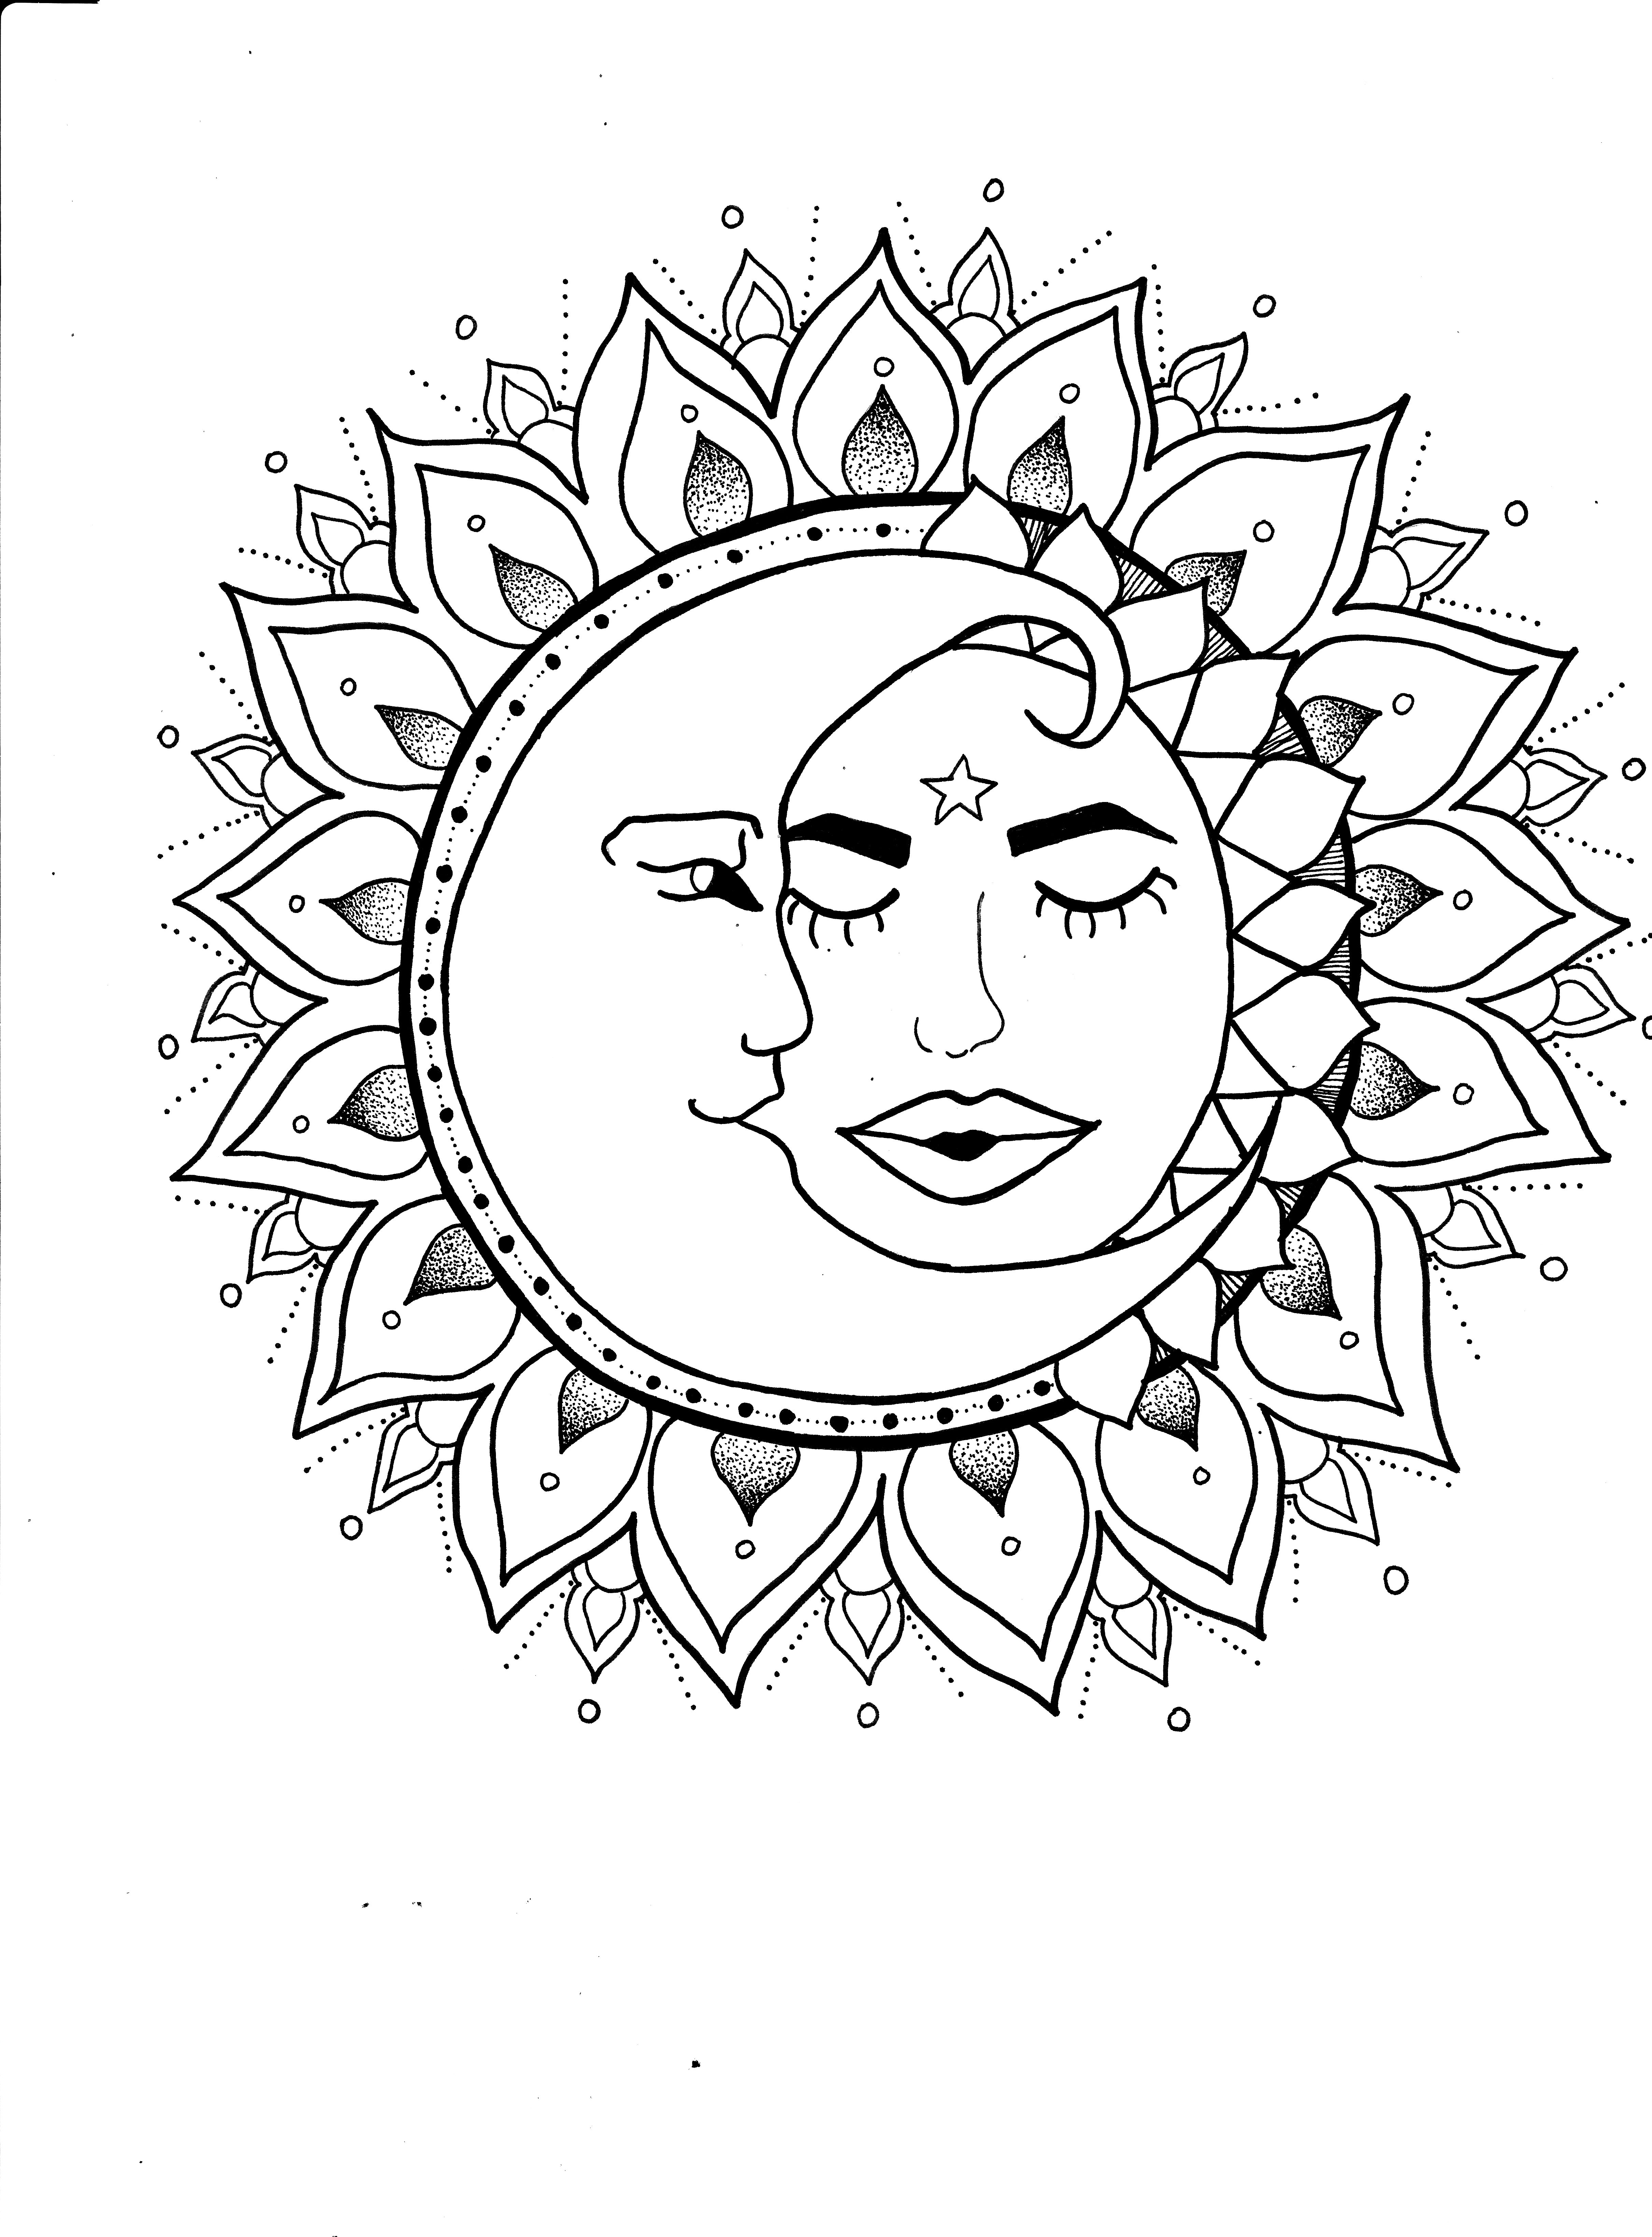 Sun And Moon Art Mandala Cute Tattoo Design By Staycreepystudios Available On Etsy Mandala Coloring Pages Mandala Drawing Summer Coloring Pages